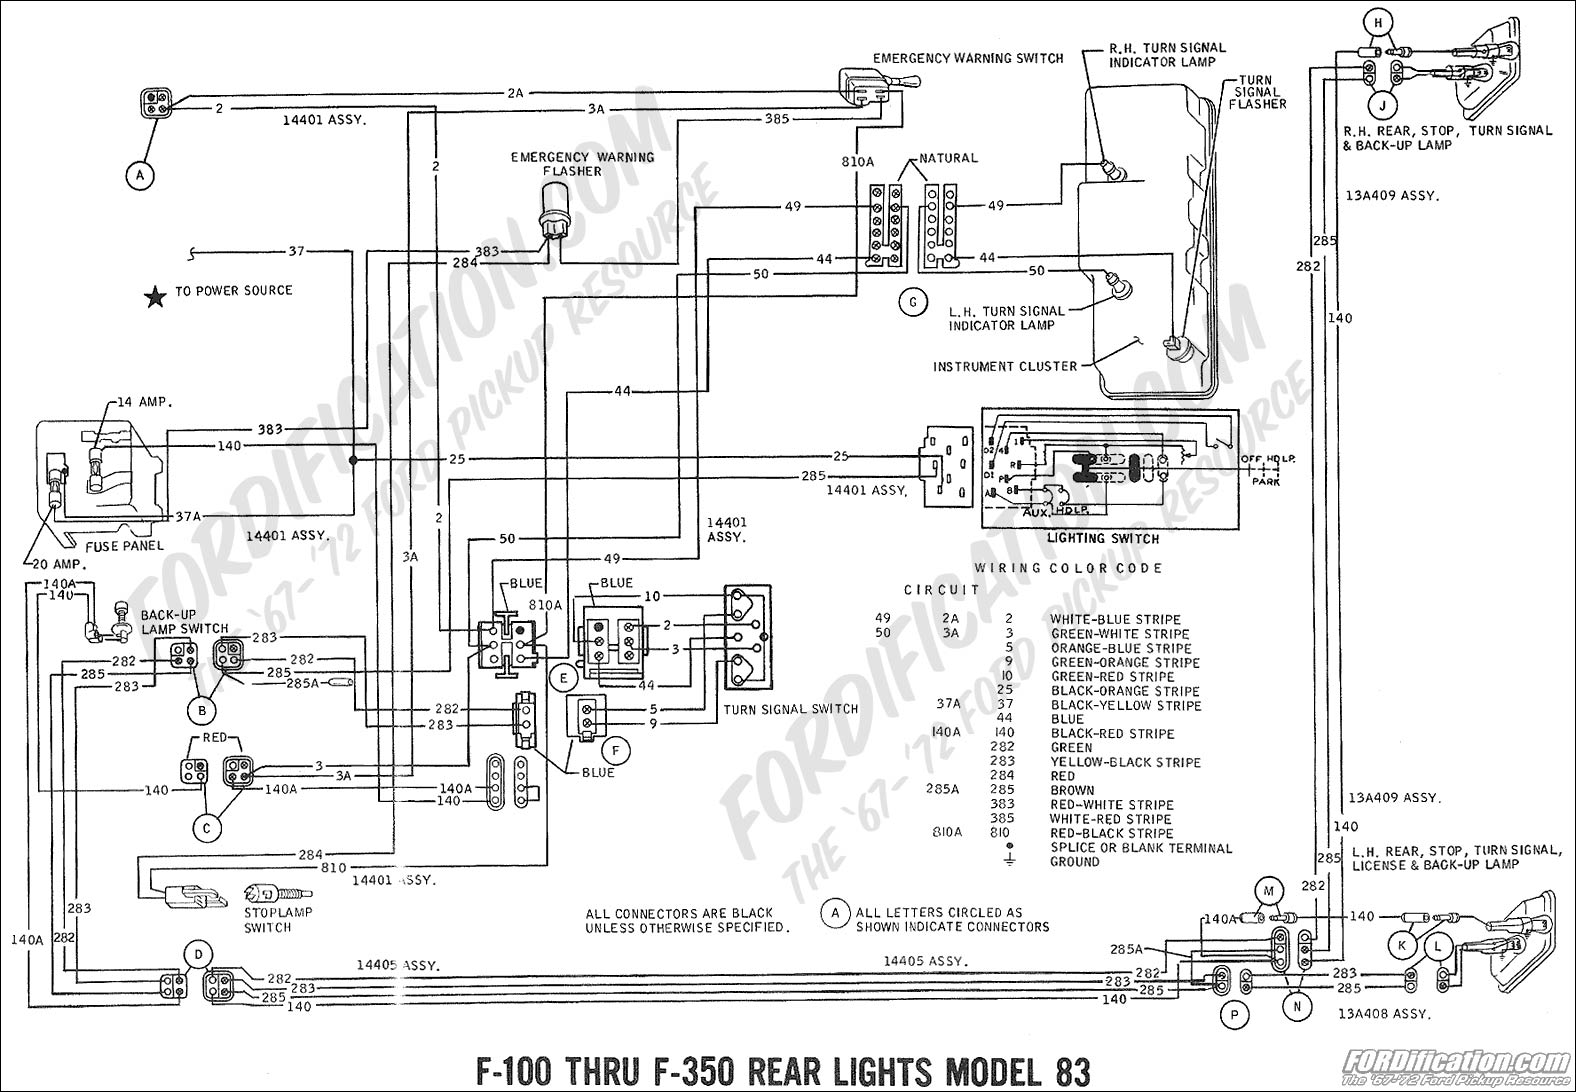 69 ford wiring diagram simple wiring diagram ford 3 wire alternator diagram 77 ford wiring diagram all wiring diagram ford wiring harness diagrams 1977 ford ltd wiring diagram